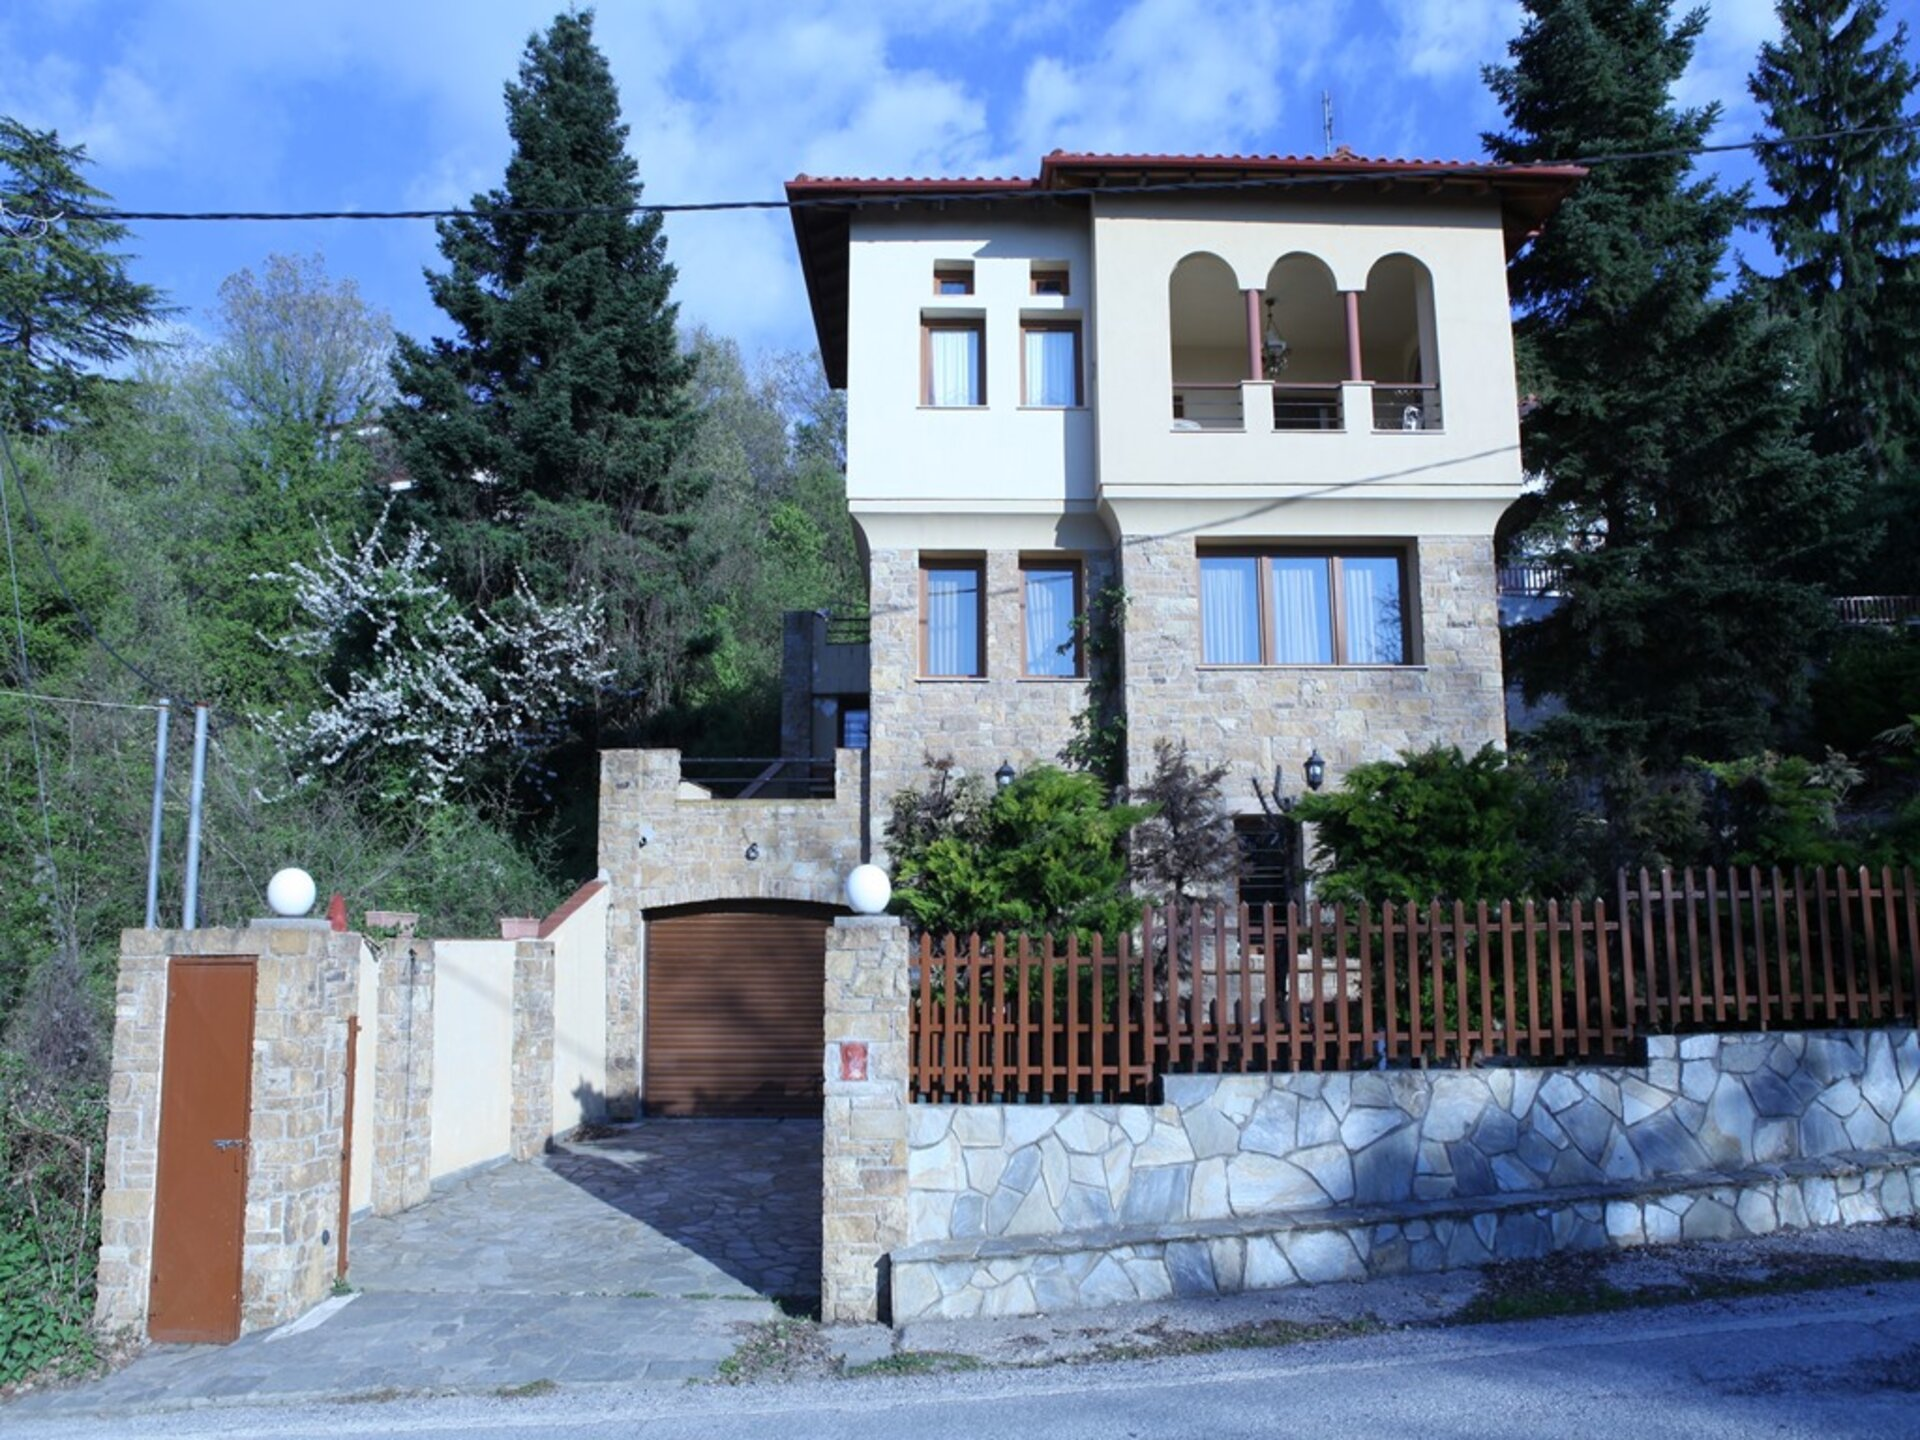 3 bedroom Detached house  in Thessaloniki  RE0640